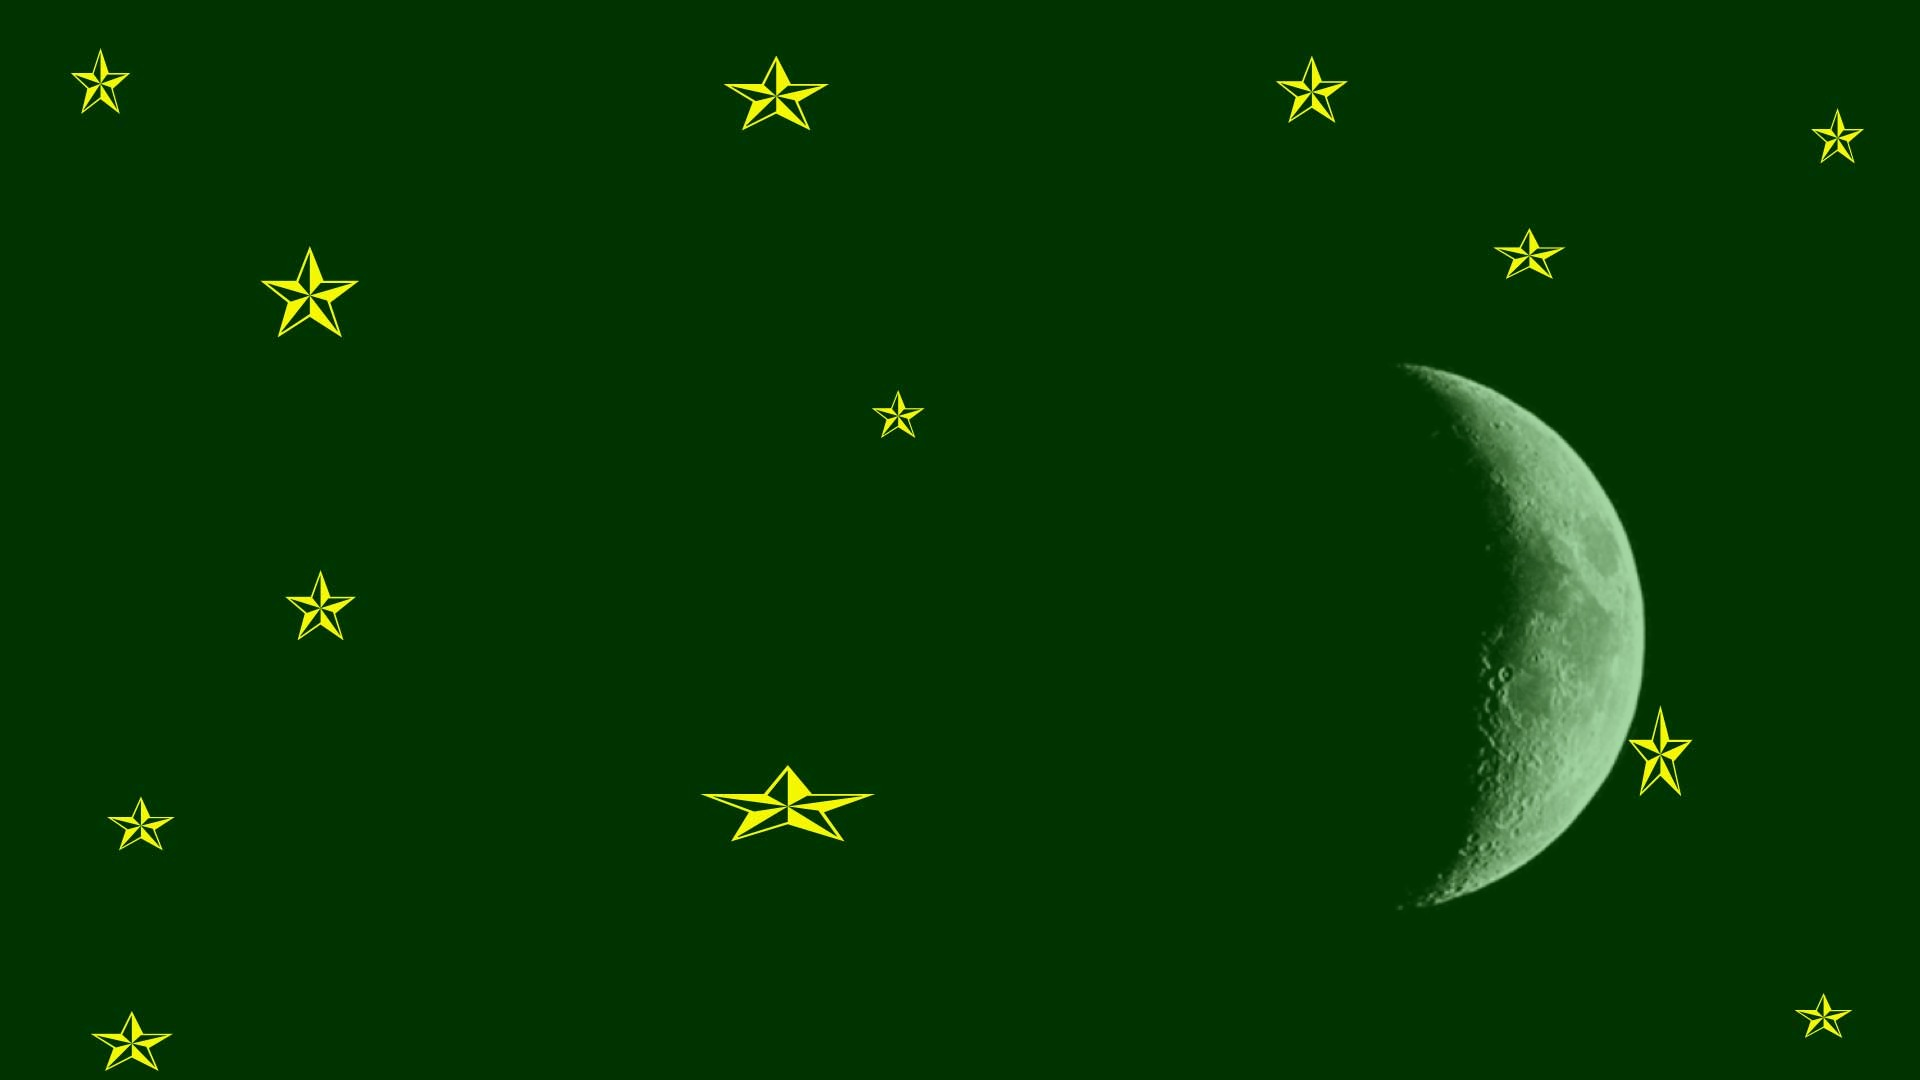 Dark Green Background Gold Stars Crescent Moon